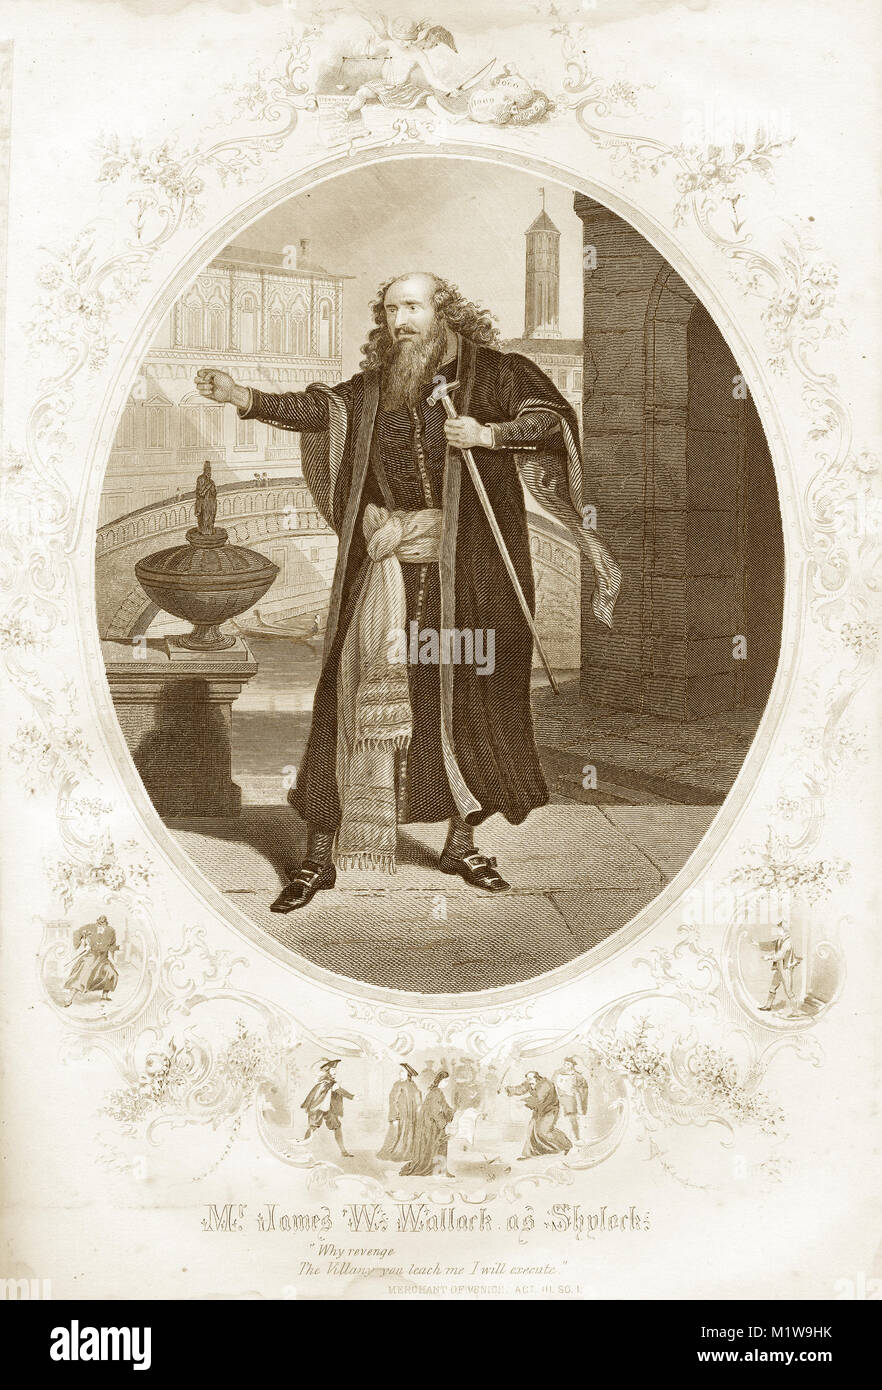 Engraving of the Shakespearean character Shylock, acted by an American, James W. Wallark in The Merchant of Venice. - Stock Image